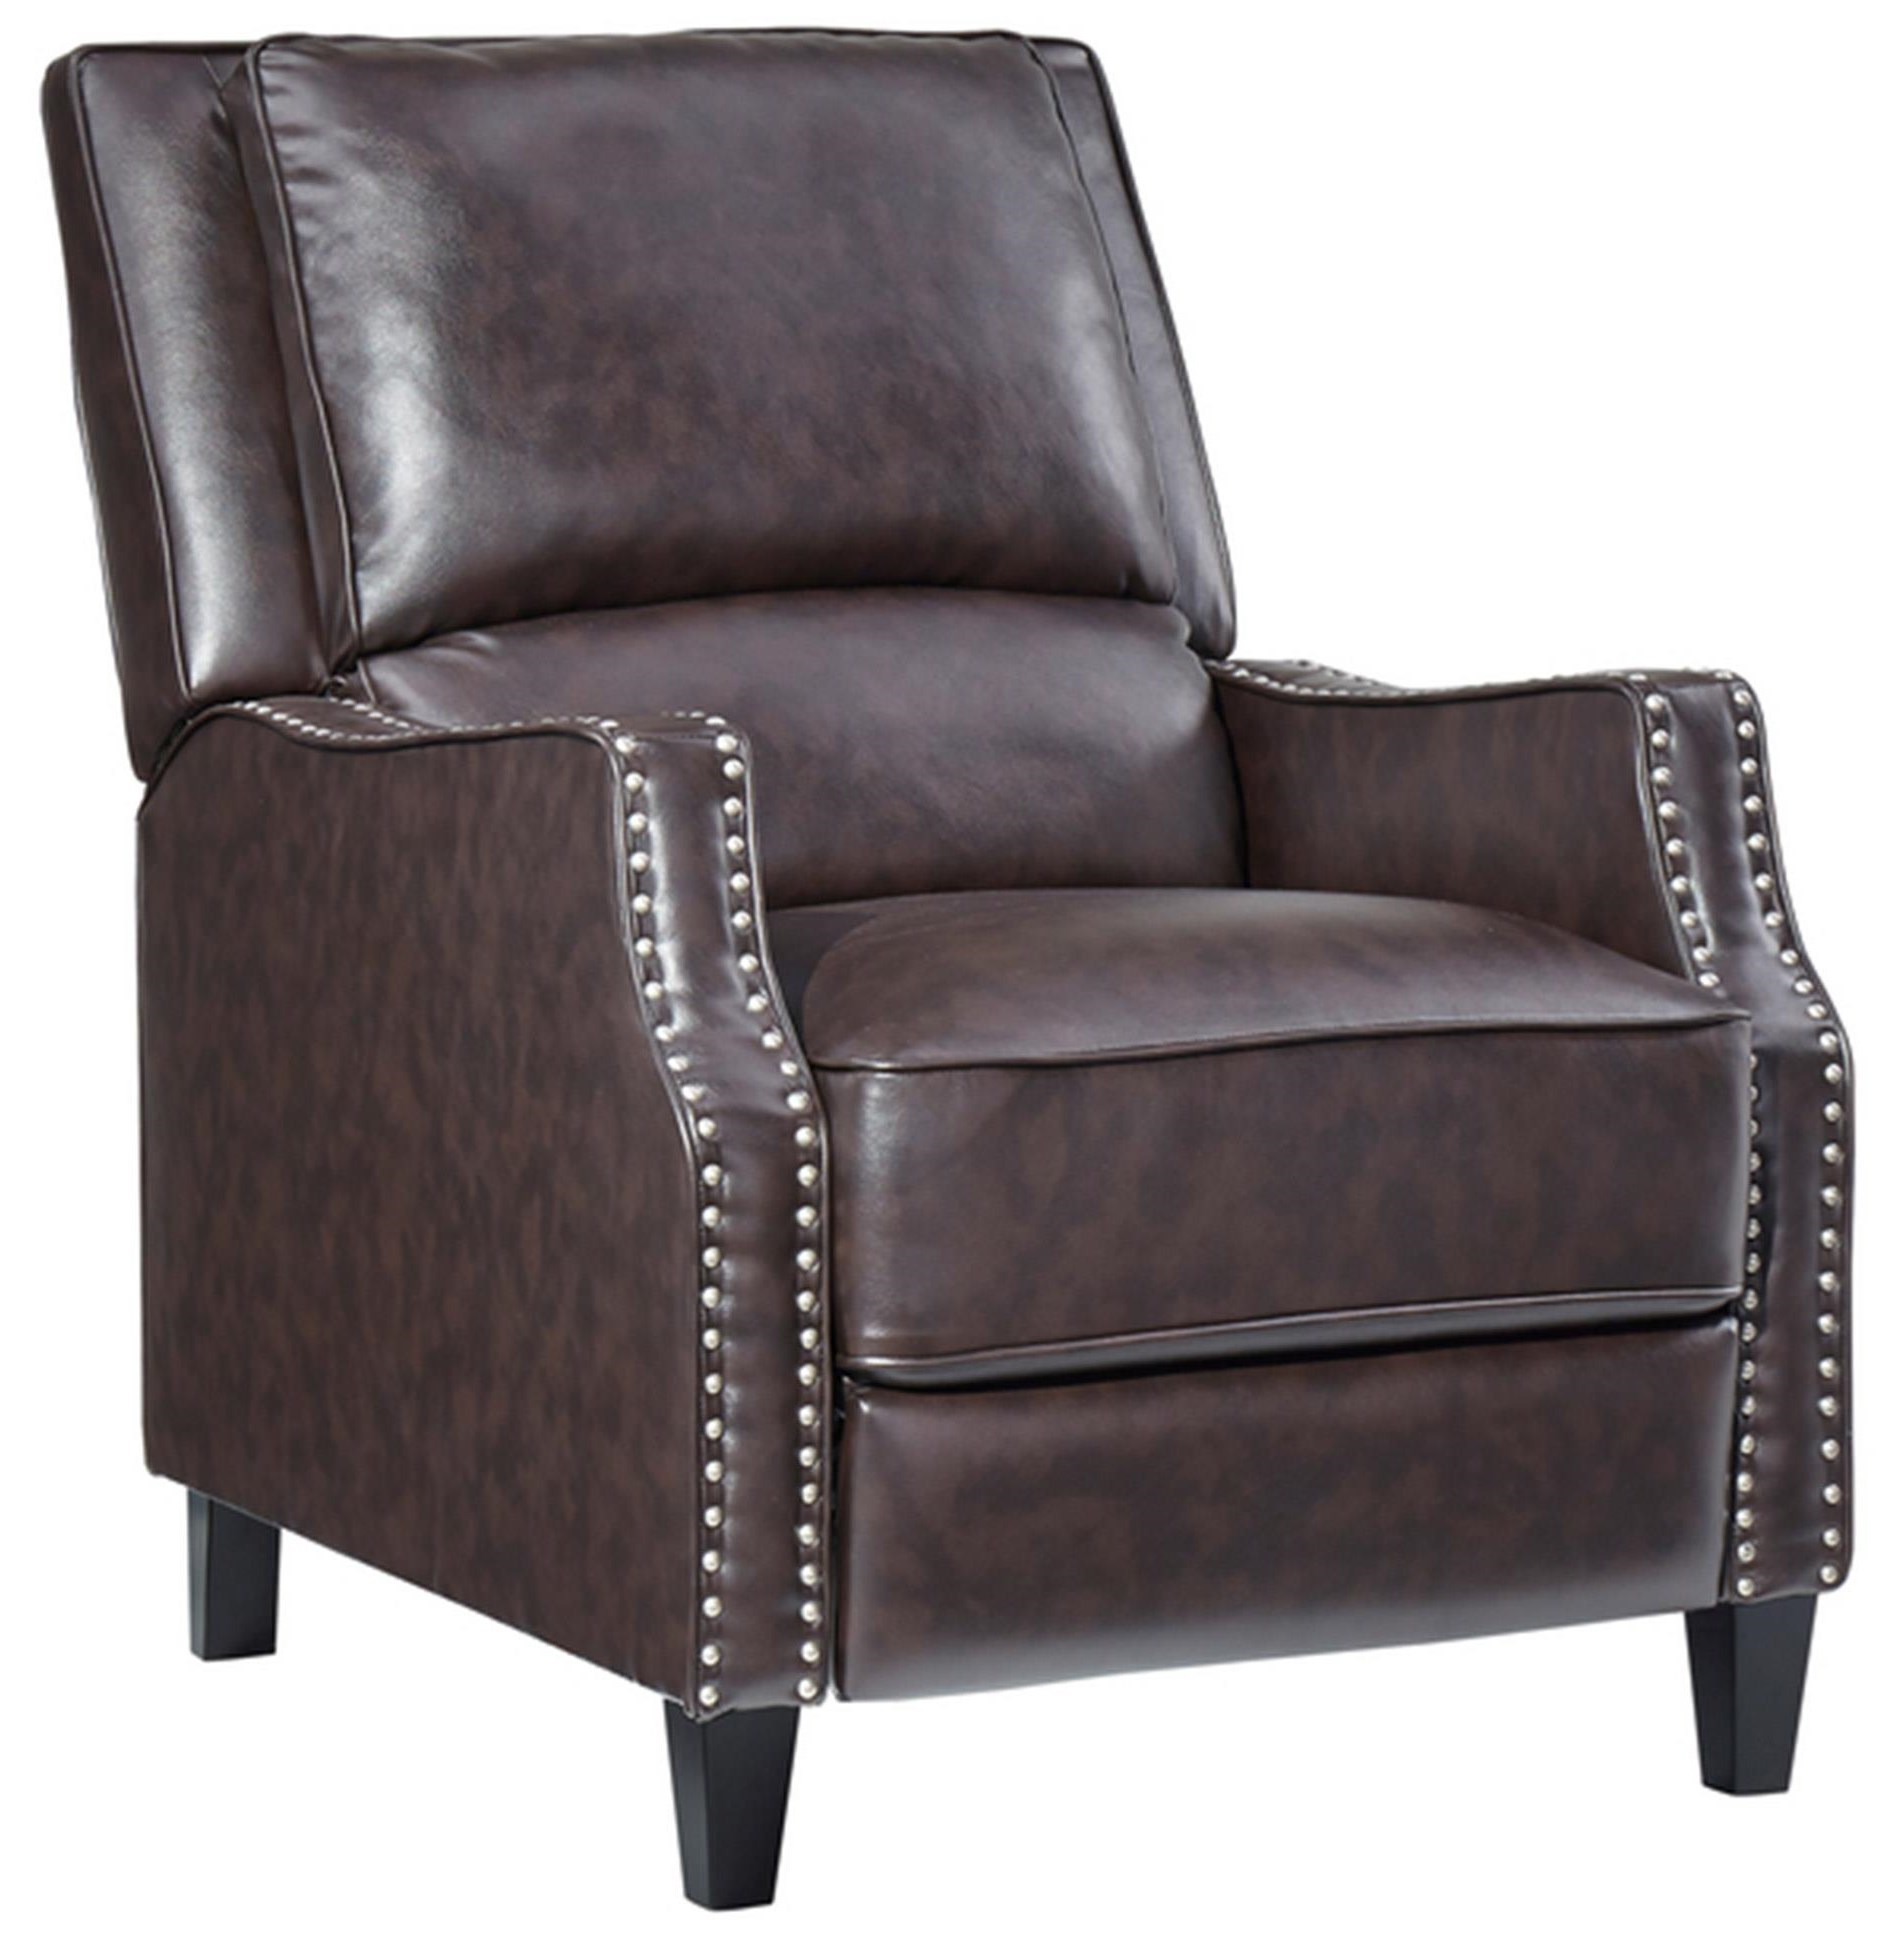 Standard Furniture Alston Push Back Recliner - Item Number: 421883